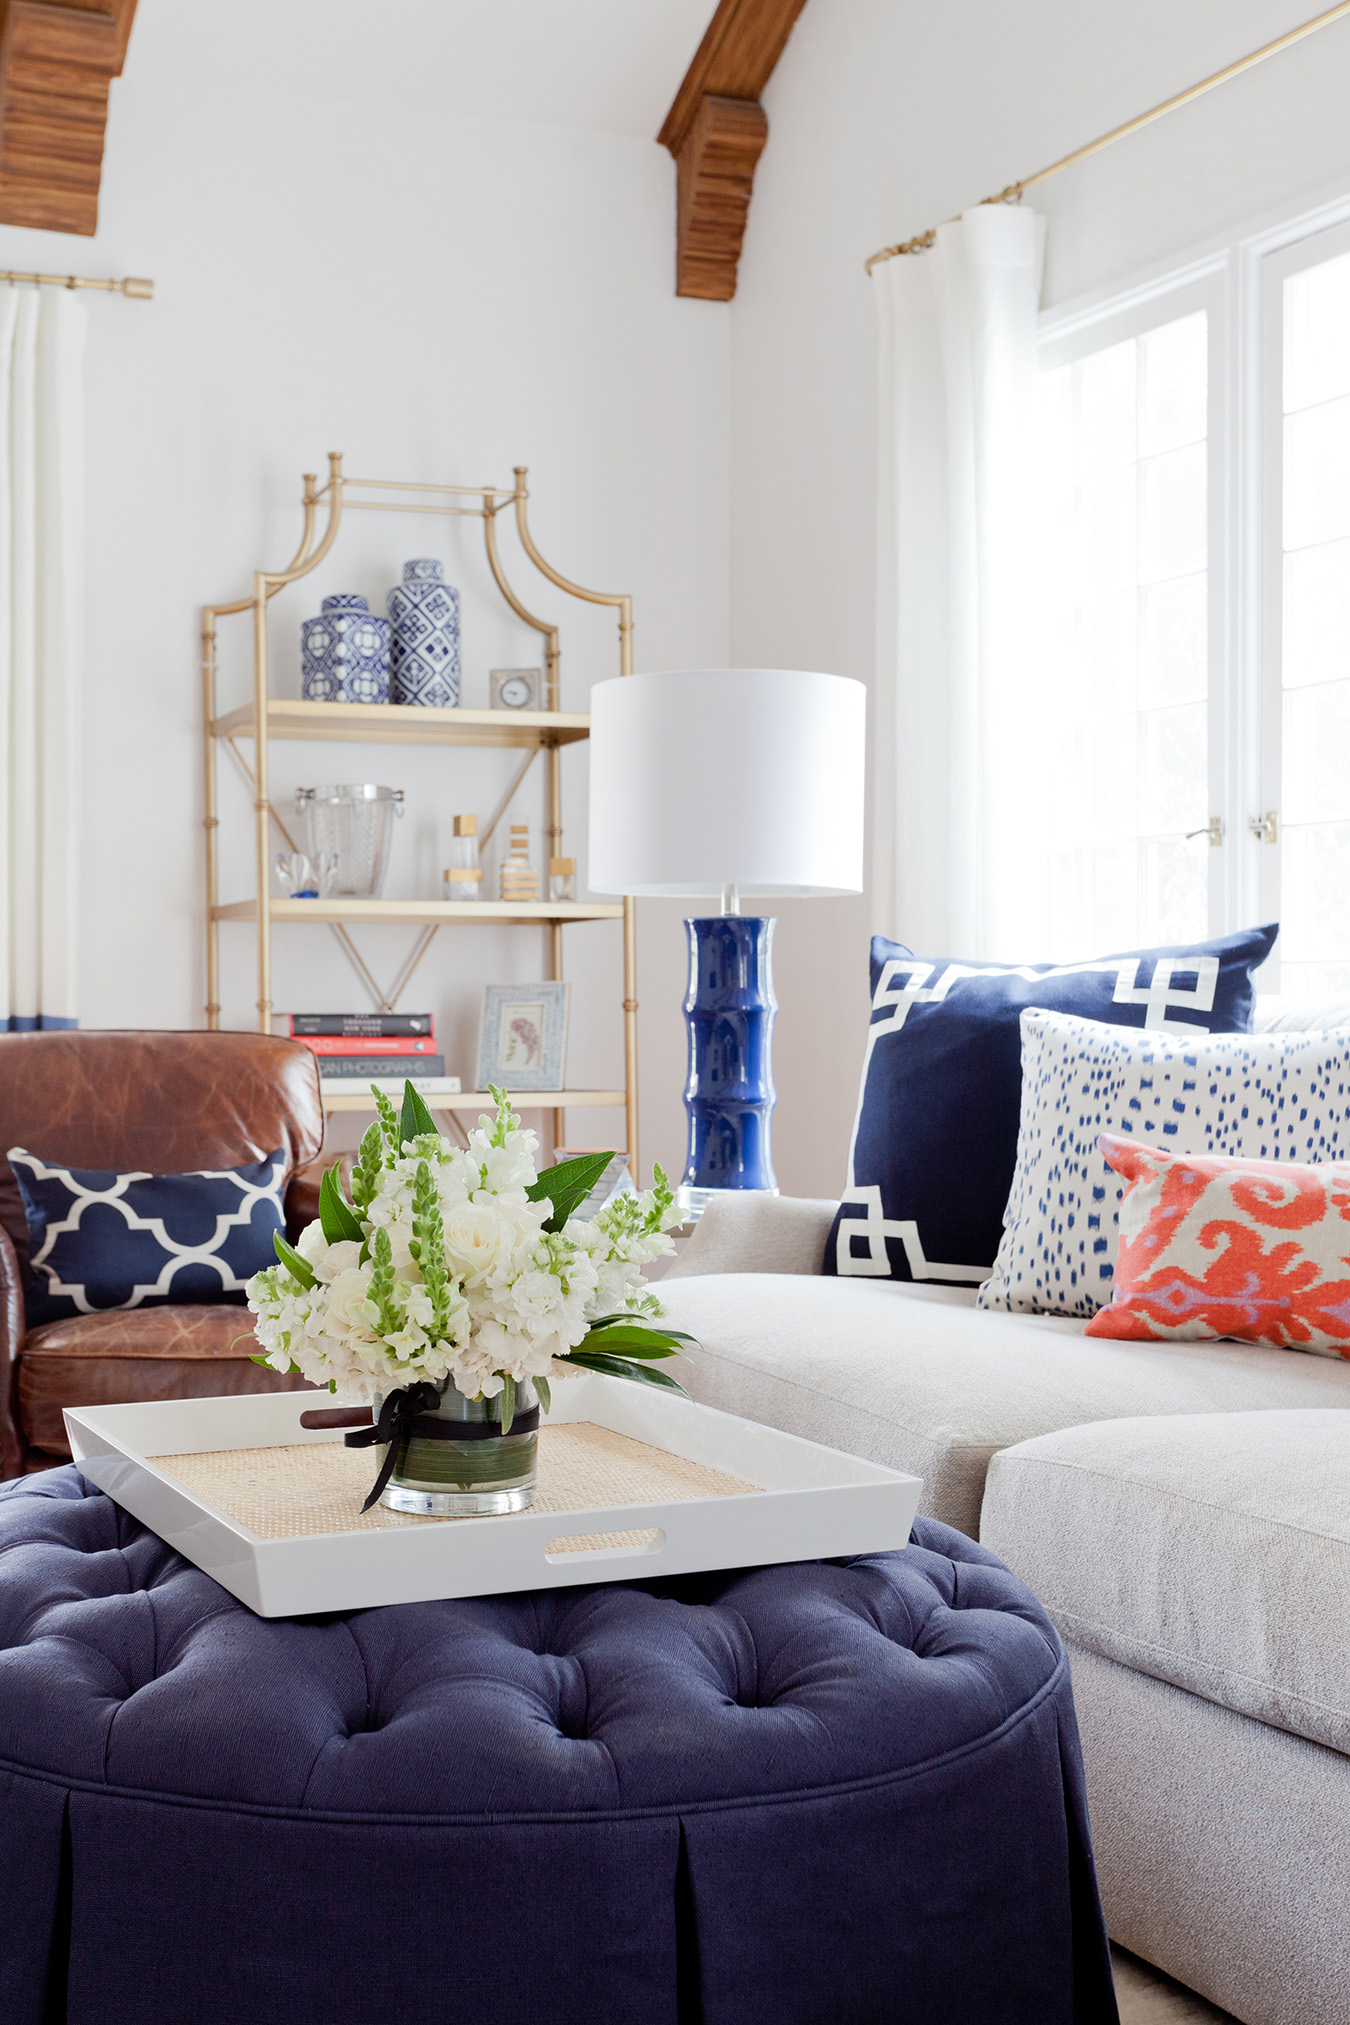 Design My Own Living Room Online Free: A Working Mom's Home Decorating Project